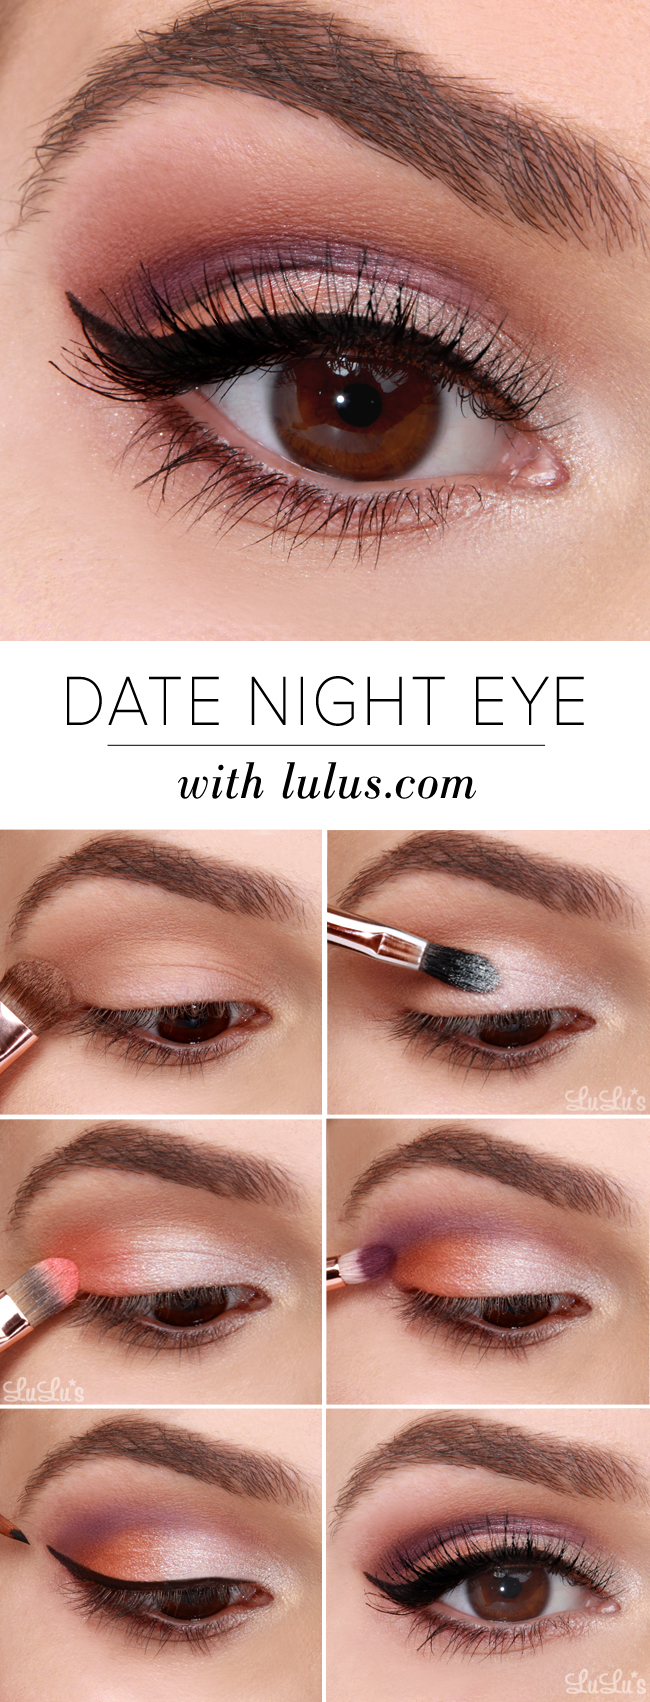 Lulus how to date night eyeshadow tutorial lulus fashion blog lulus how to date night eyeshadow tutorial at lulus baditri Image collections